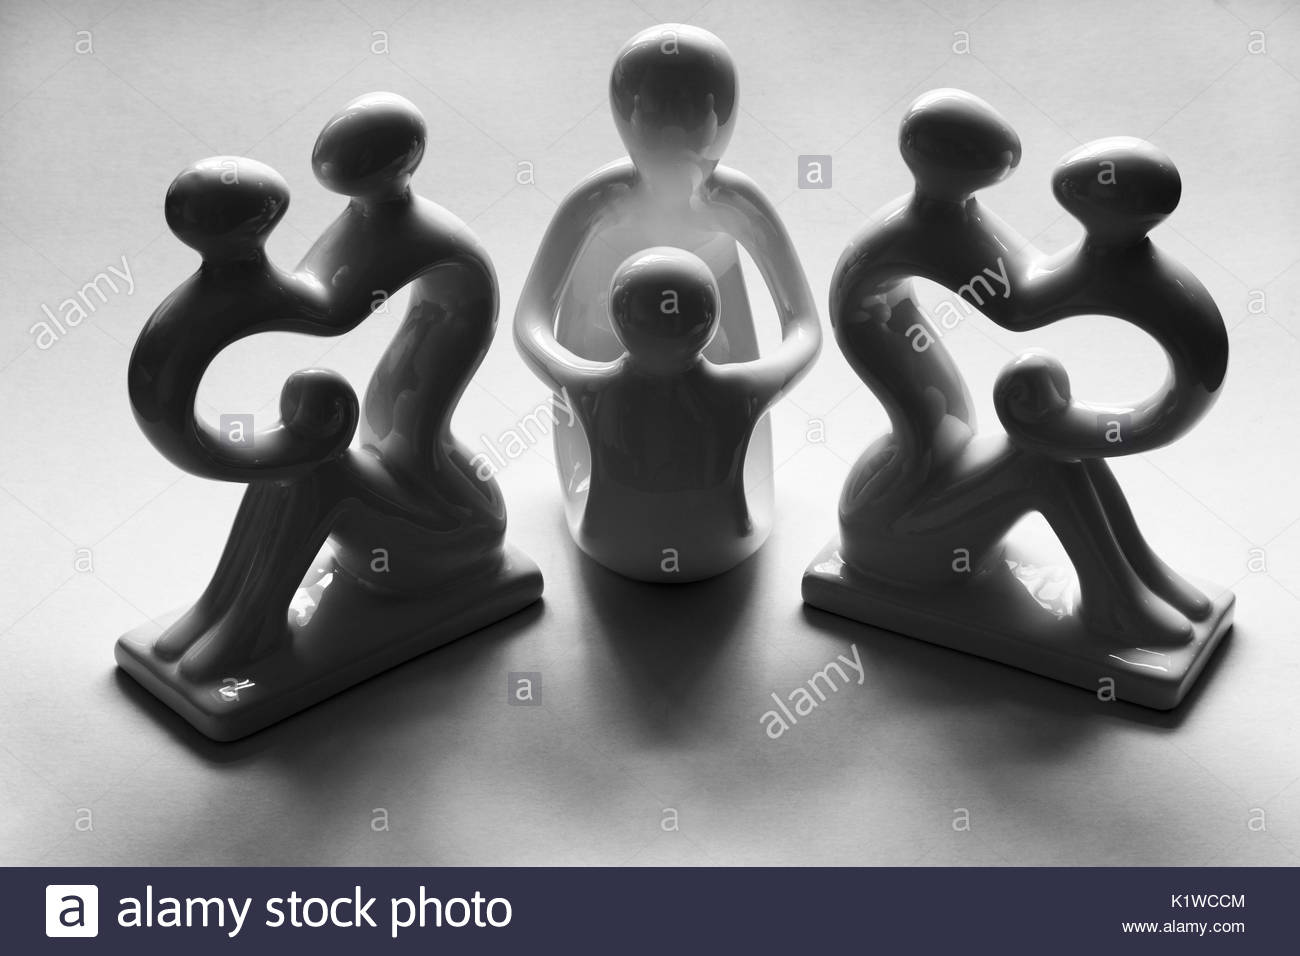 Family ties. Figurines arranged to represent Man the Father, Woman the Mother, the Girl and Boy their offspring. - Stock Image